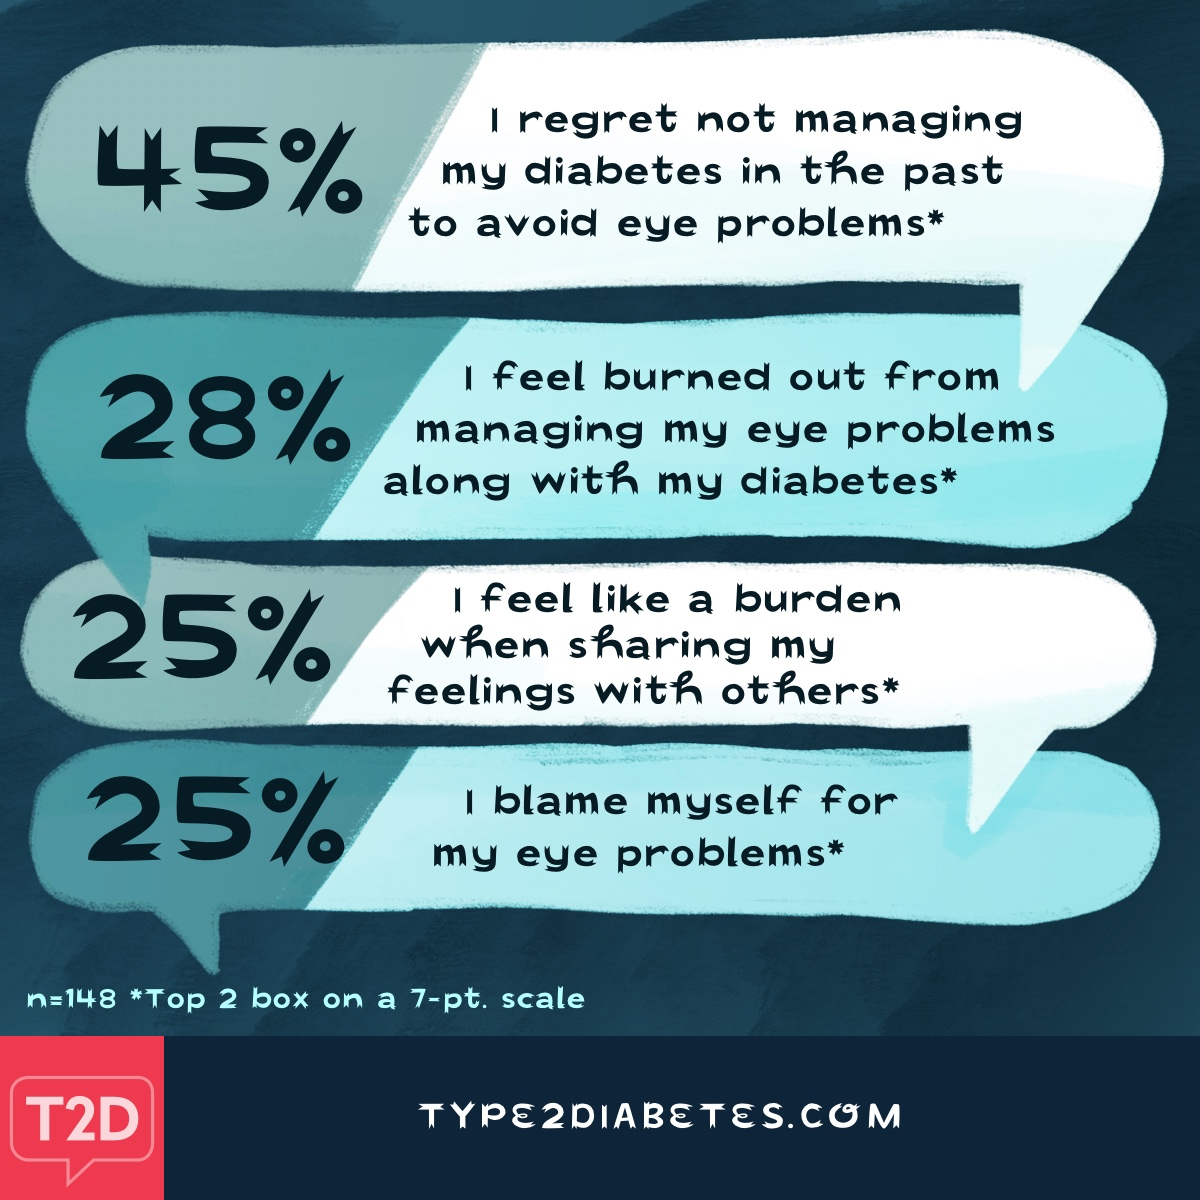 People felt regret for not managing diabetes properly and felt burned out from managing vision problems along with diabetes